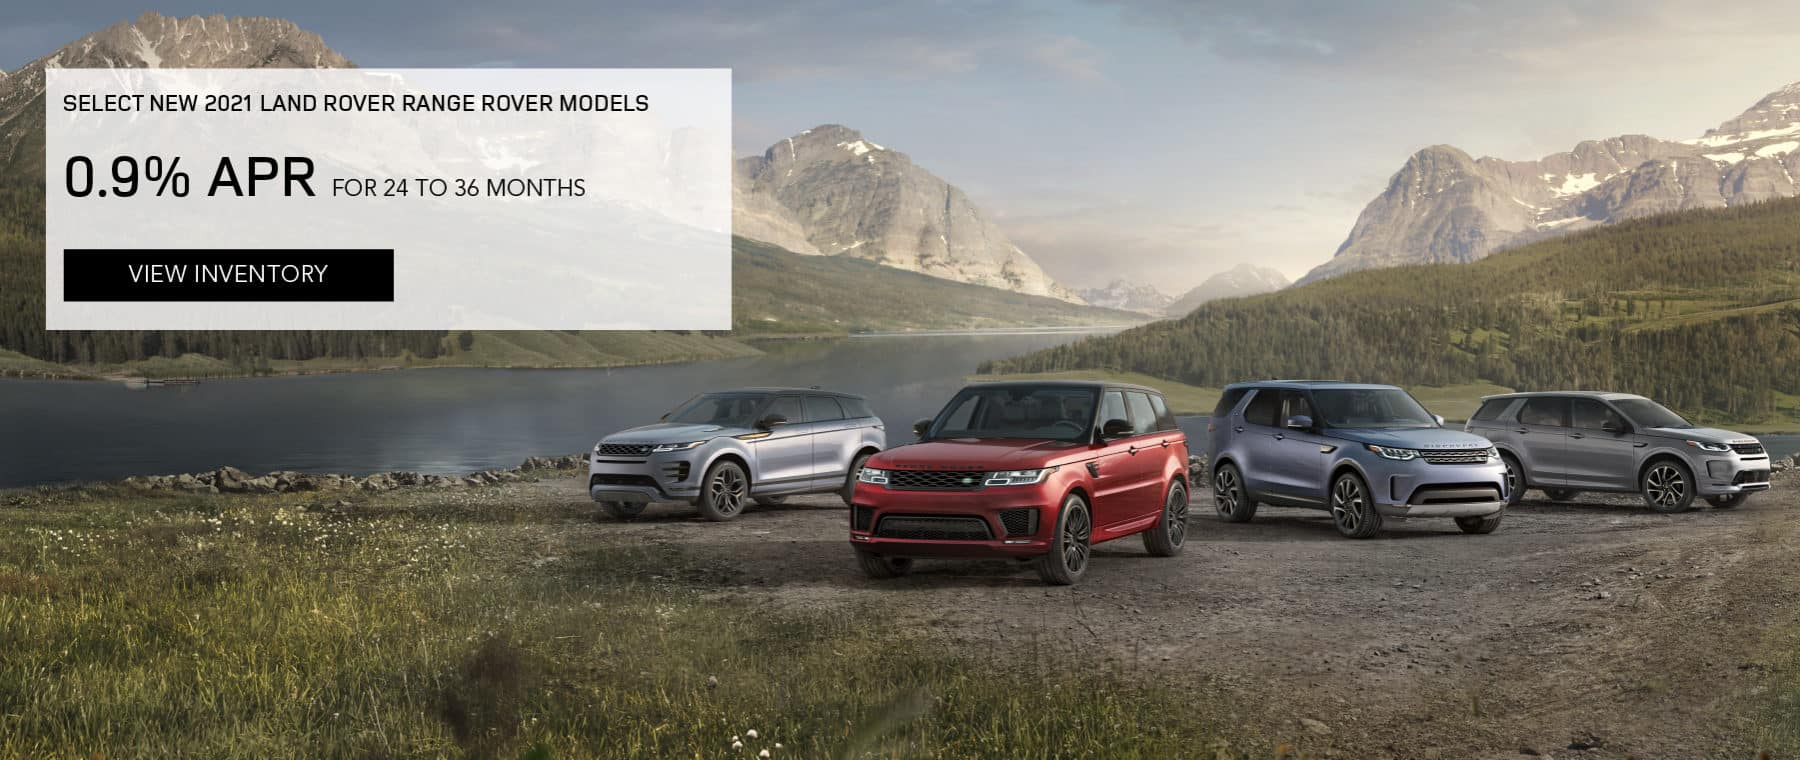 SELECT NEW 2021 LAND ROVER RANGE ROVER MODELS. 0.9% APR FOR 24 TO 36 MONTHS. VIEW INVENTORY. IMAGE FEATURES LAND ROVER FLEET PARKED IN VALLEY.